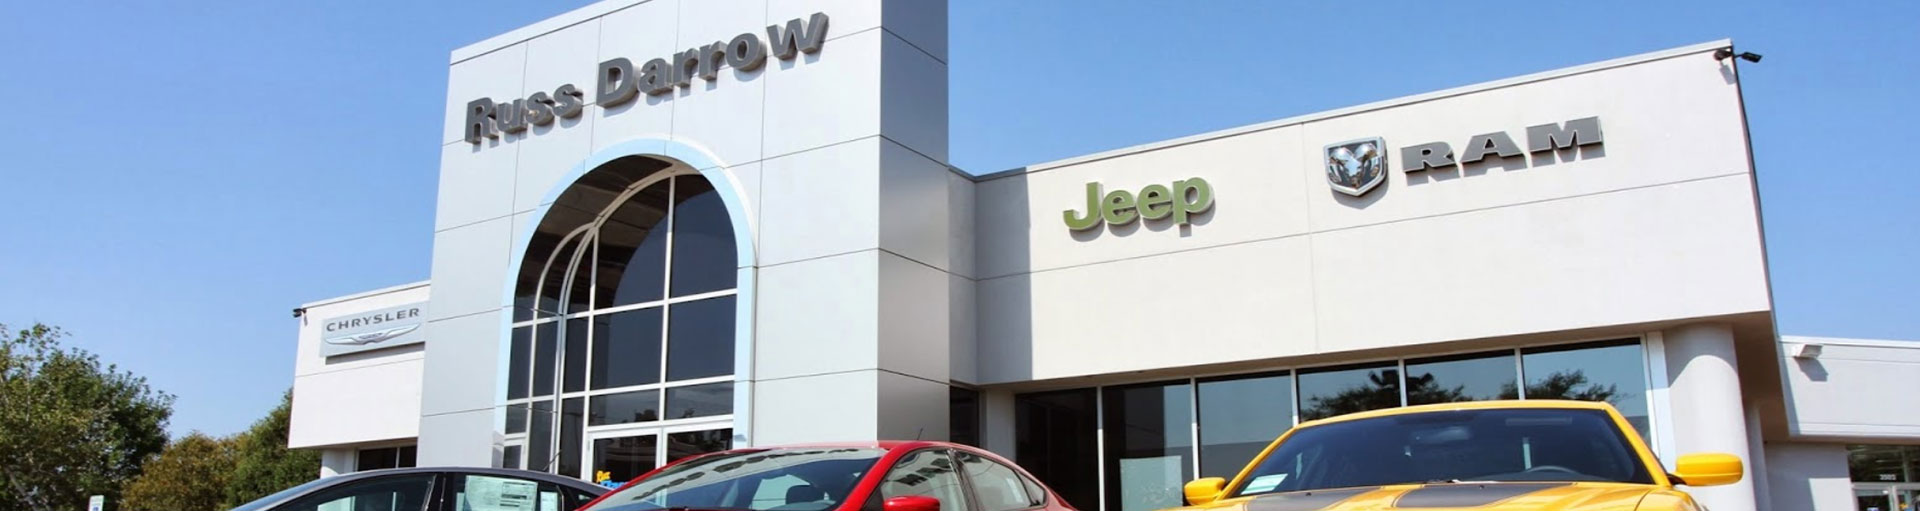 Chrysler Dodge Jeep Ram Service Department